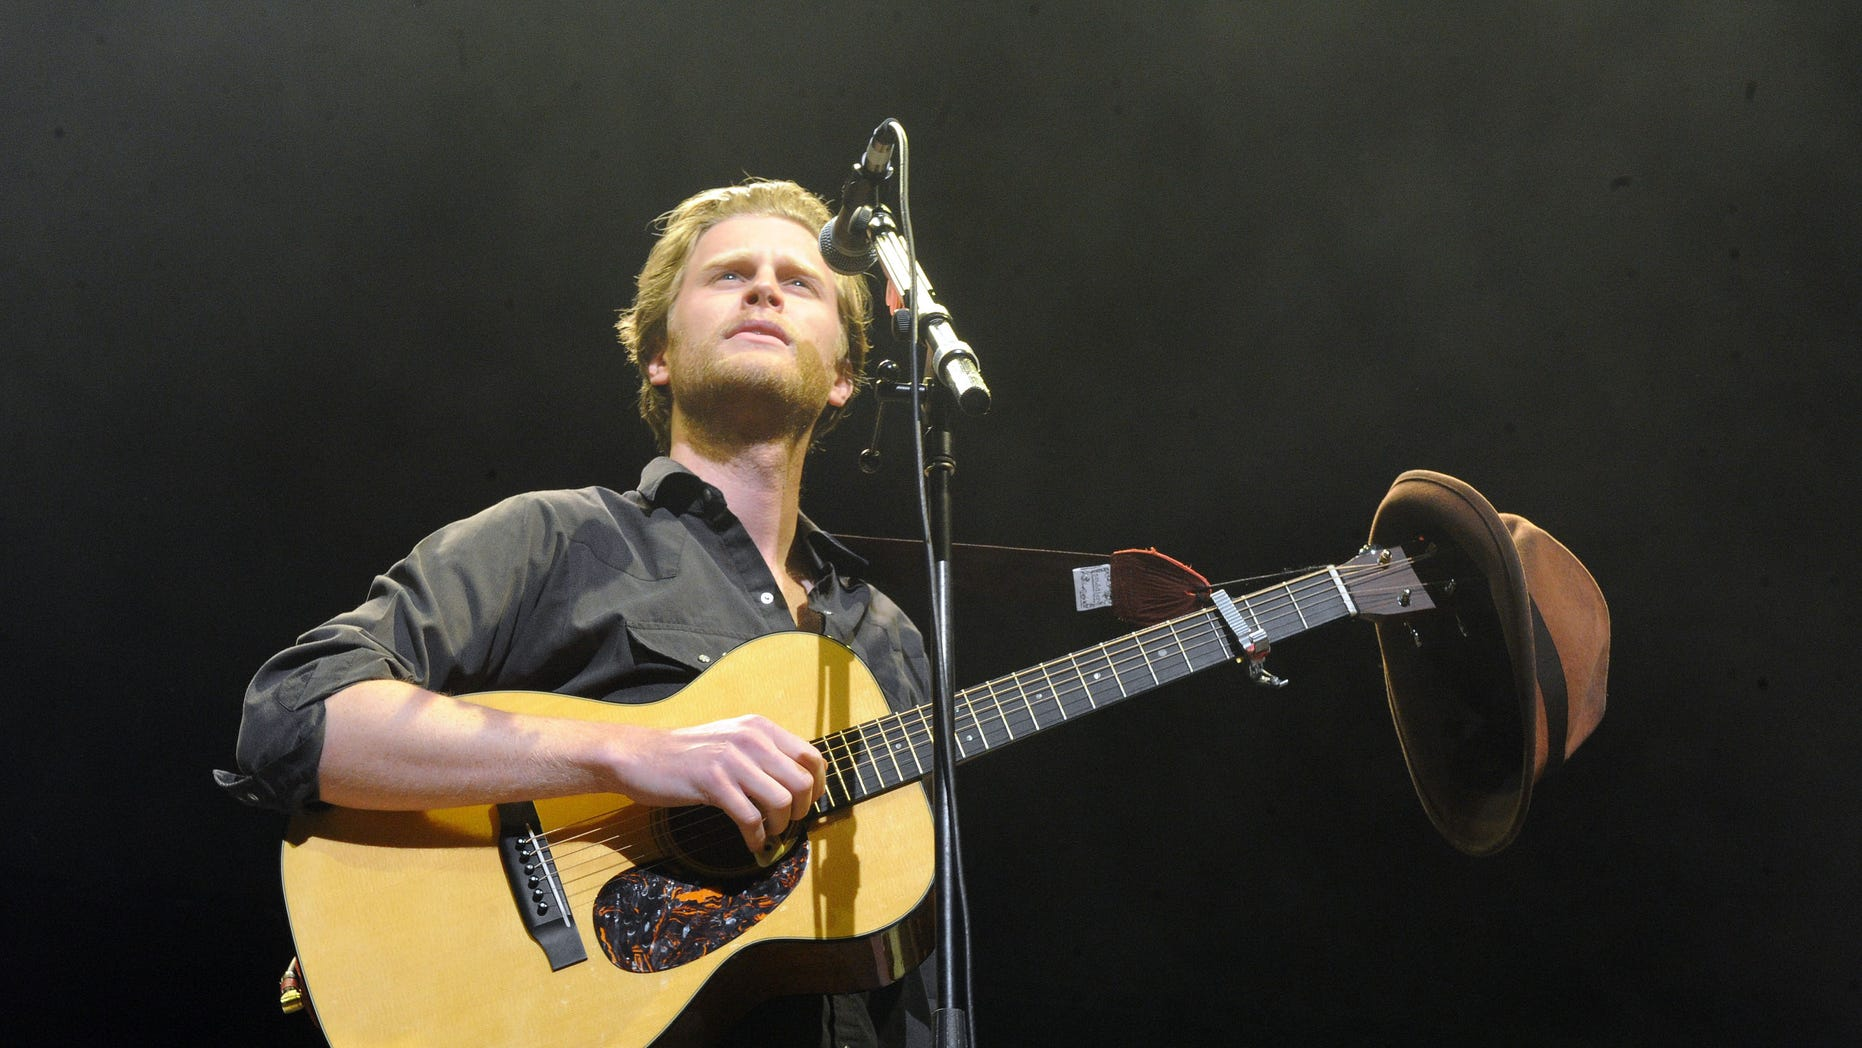 "FILE - In this Dec. 8, 2012 file photo, Wesley Schultz of The Lumineers performs at KROQ Almost Acoustic Christmas in Los Angeles. The Lumineers' ""Ho Hey"" was the top streamed track on Spotify for the week of Dec. 10. (Photo by Katy Winn/Invision/AP, File)"